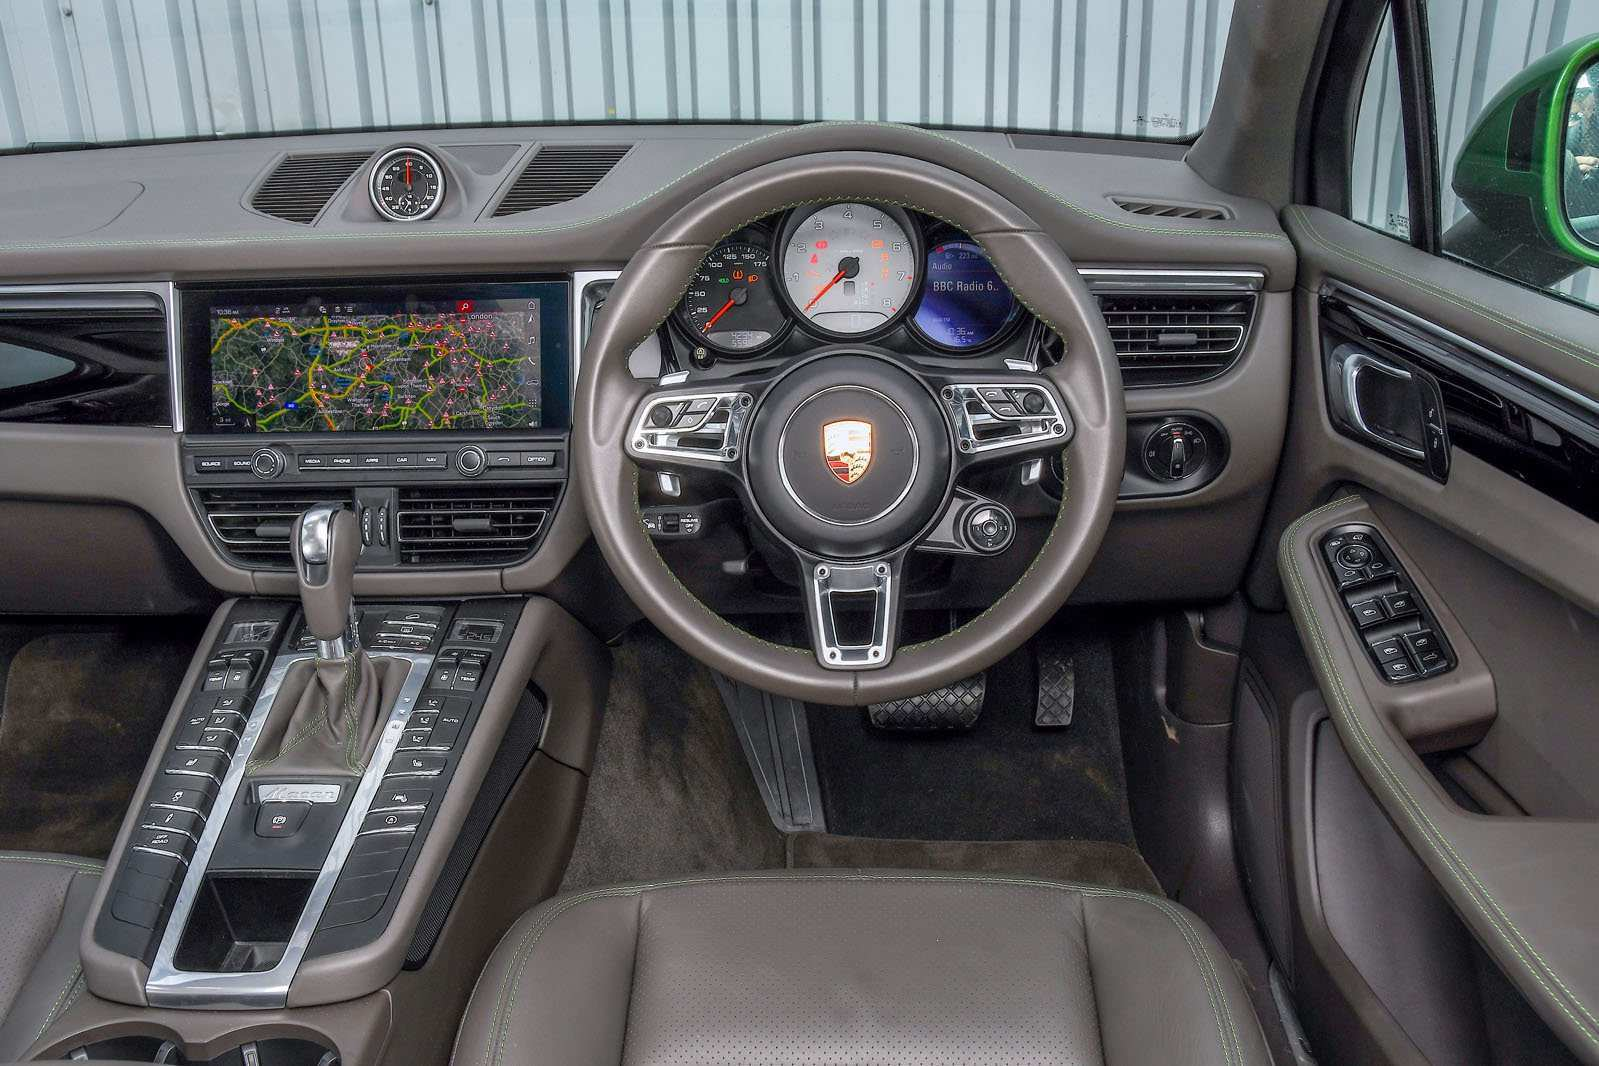 44 New 2019 Porsche Macan Interior Engine